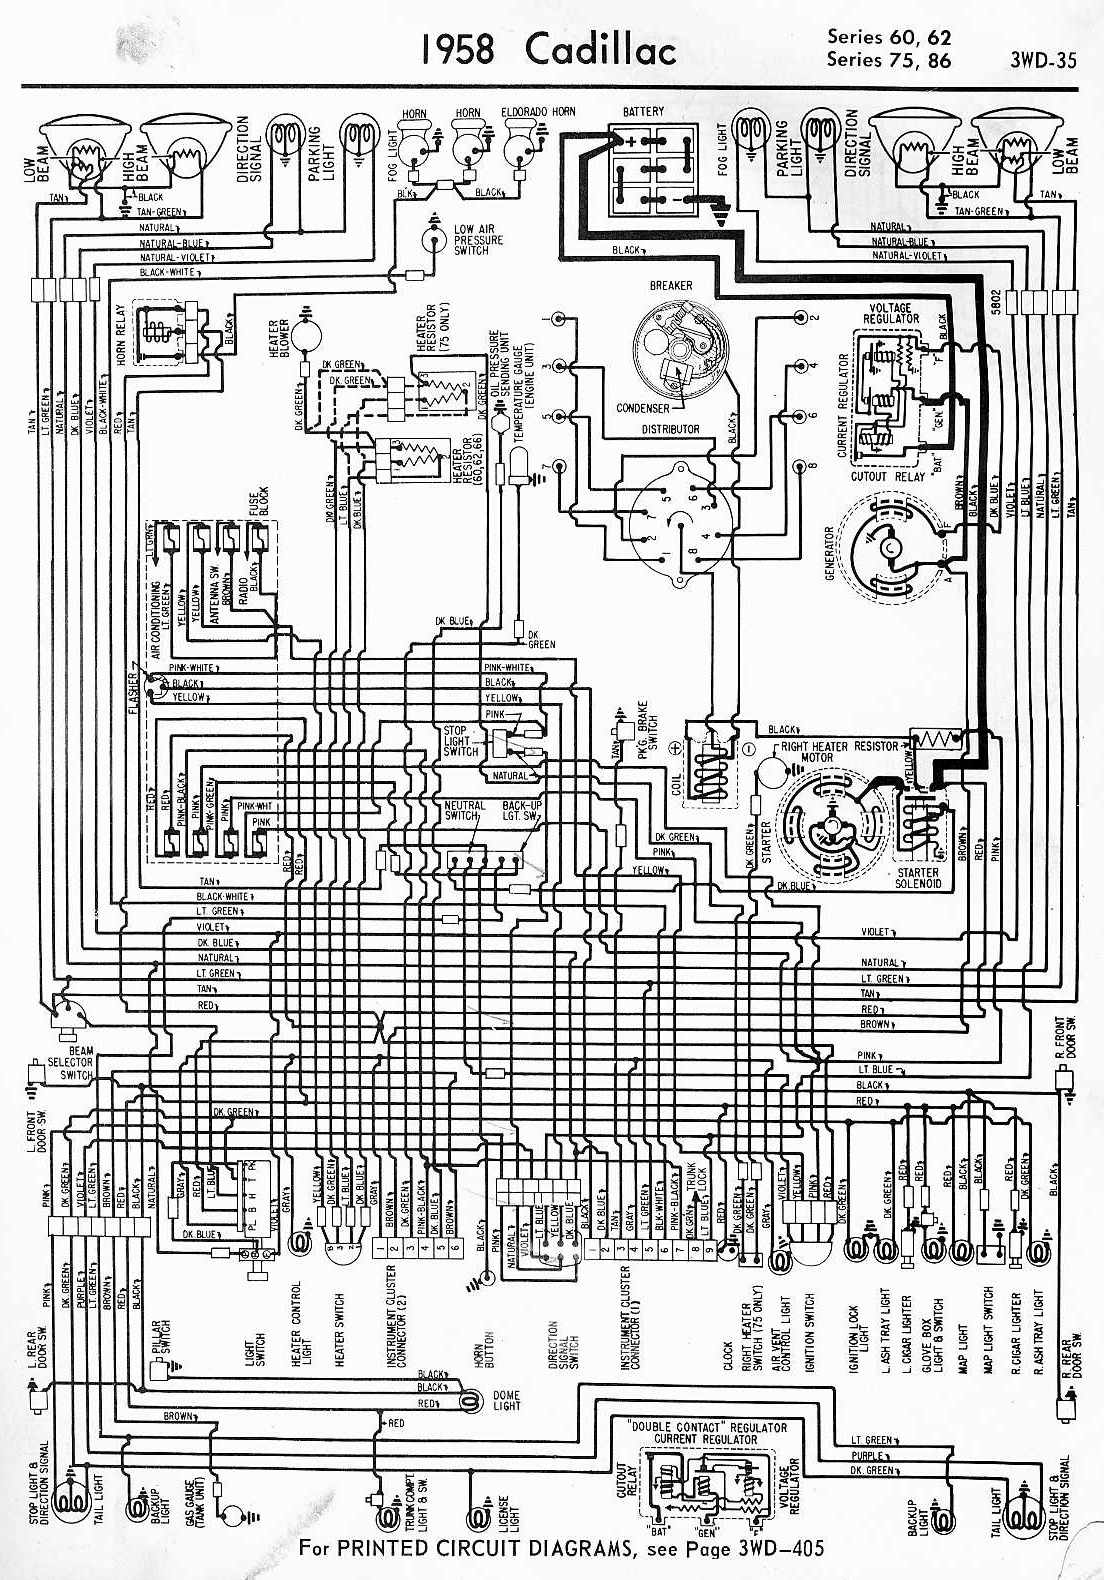 cadillac car manuals wiring diagrams pdf fault codes rh automotive manuals net Cadillac Electrical Schematic 2002 Cadillac DeVille Wiring-Diagram